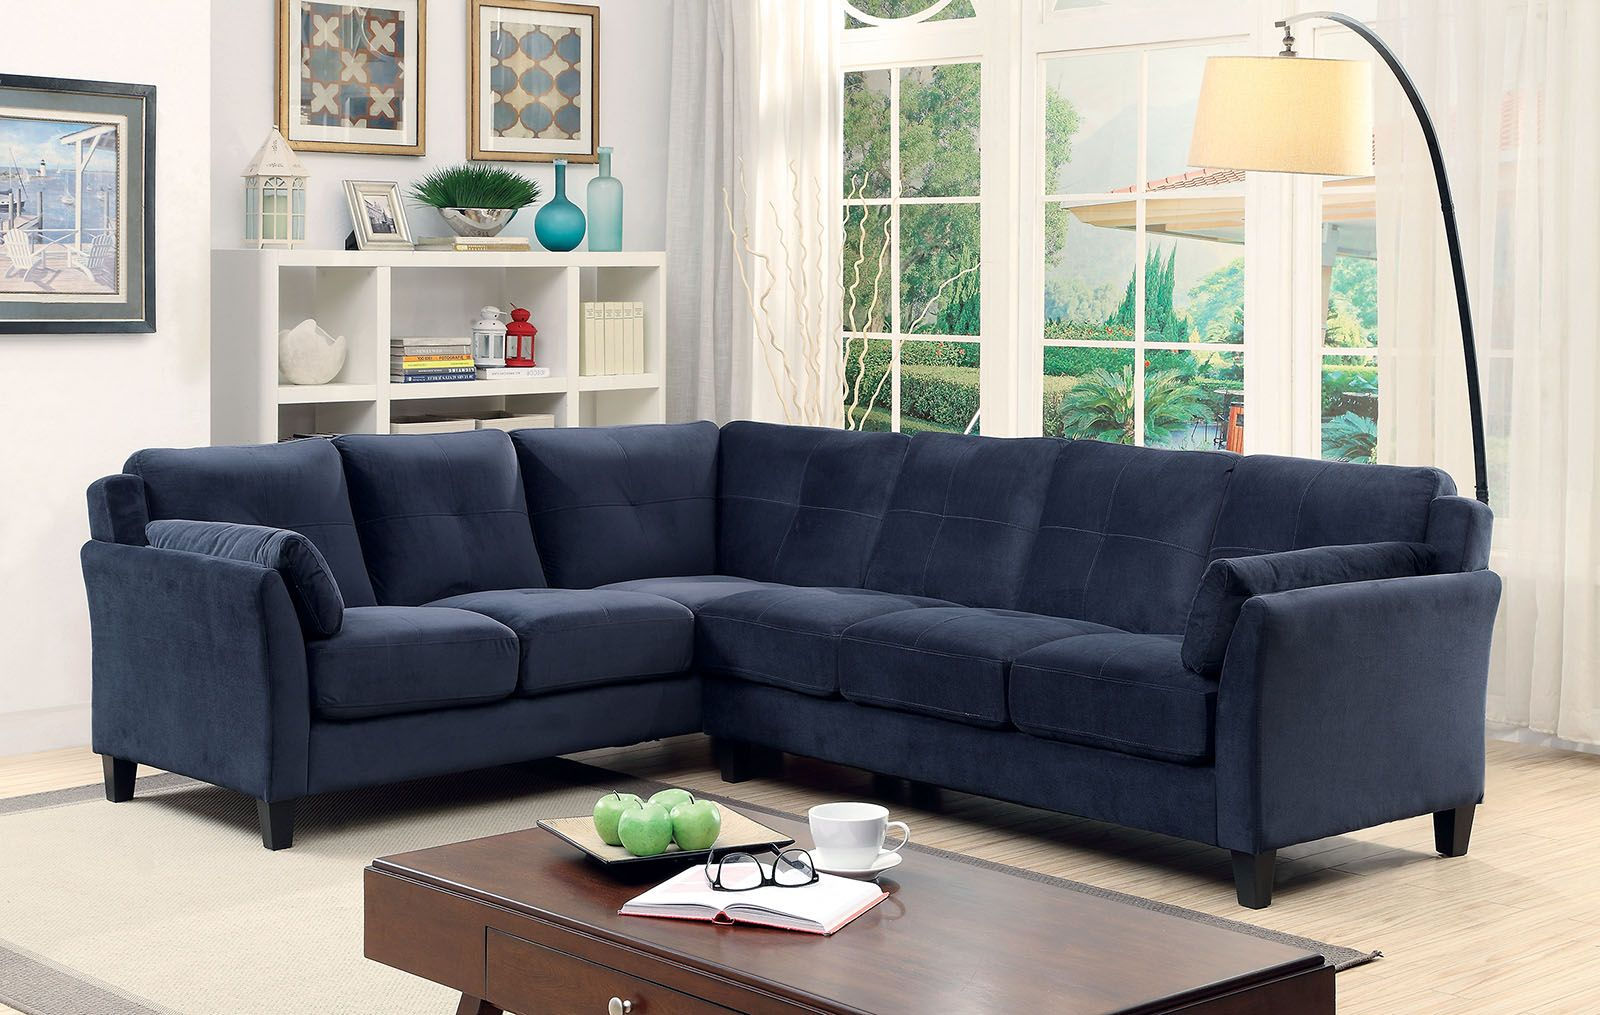 Peever 6368NV Navy Blue Contemporary Sectional Sofa | My furniture ...